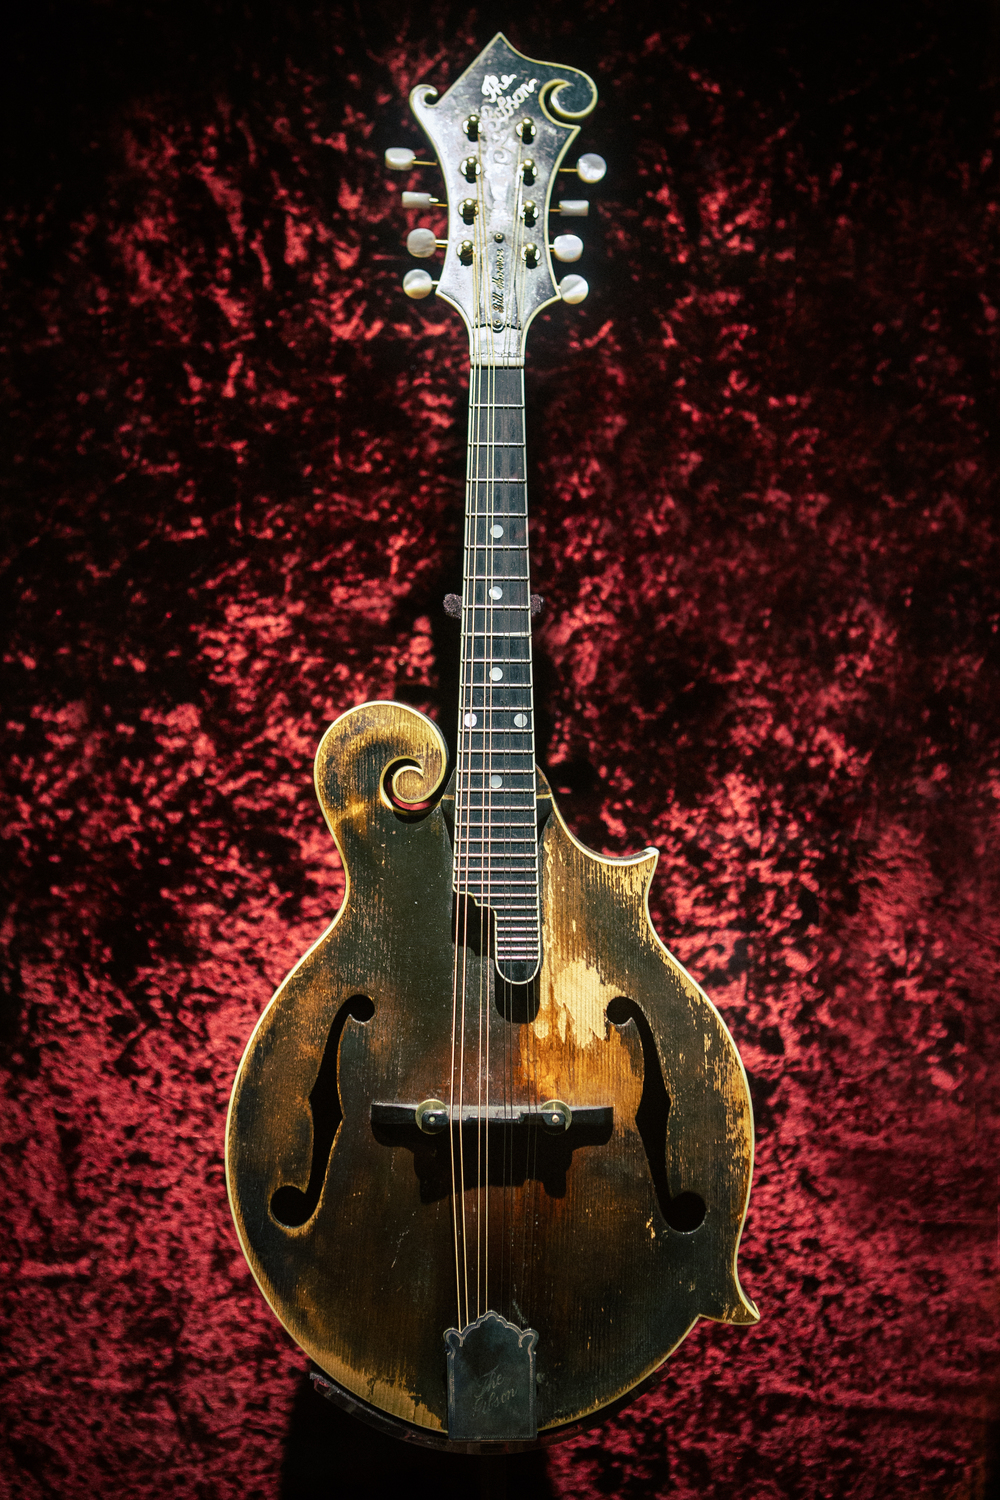 Bill Monroe's Mandolin